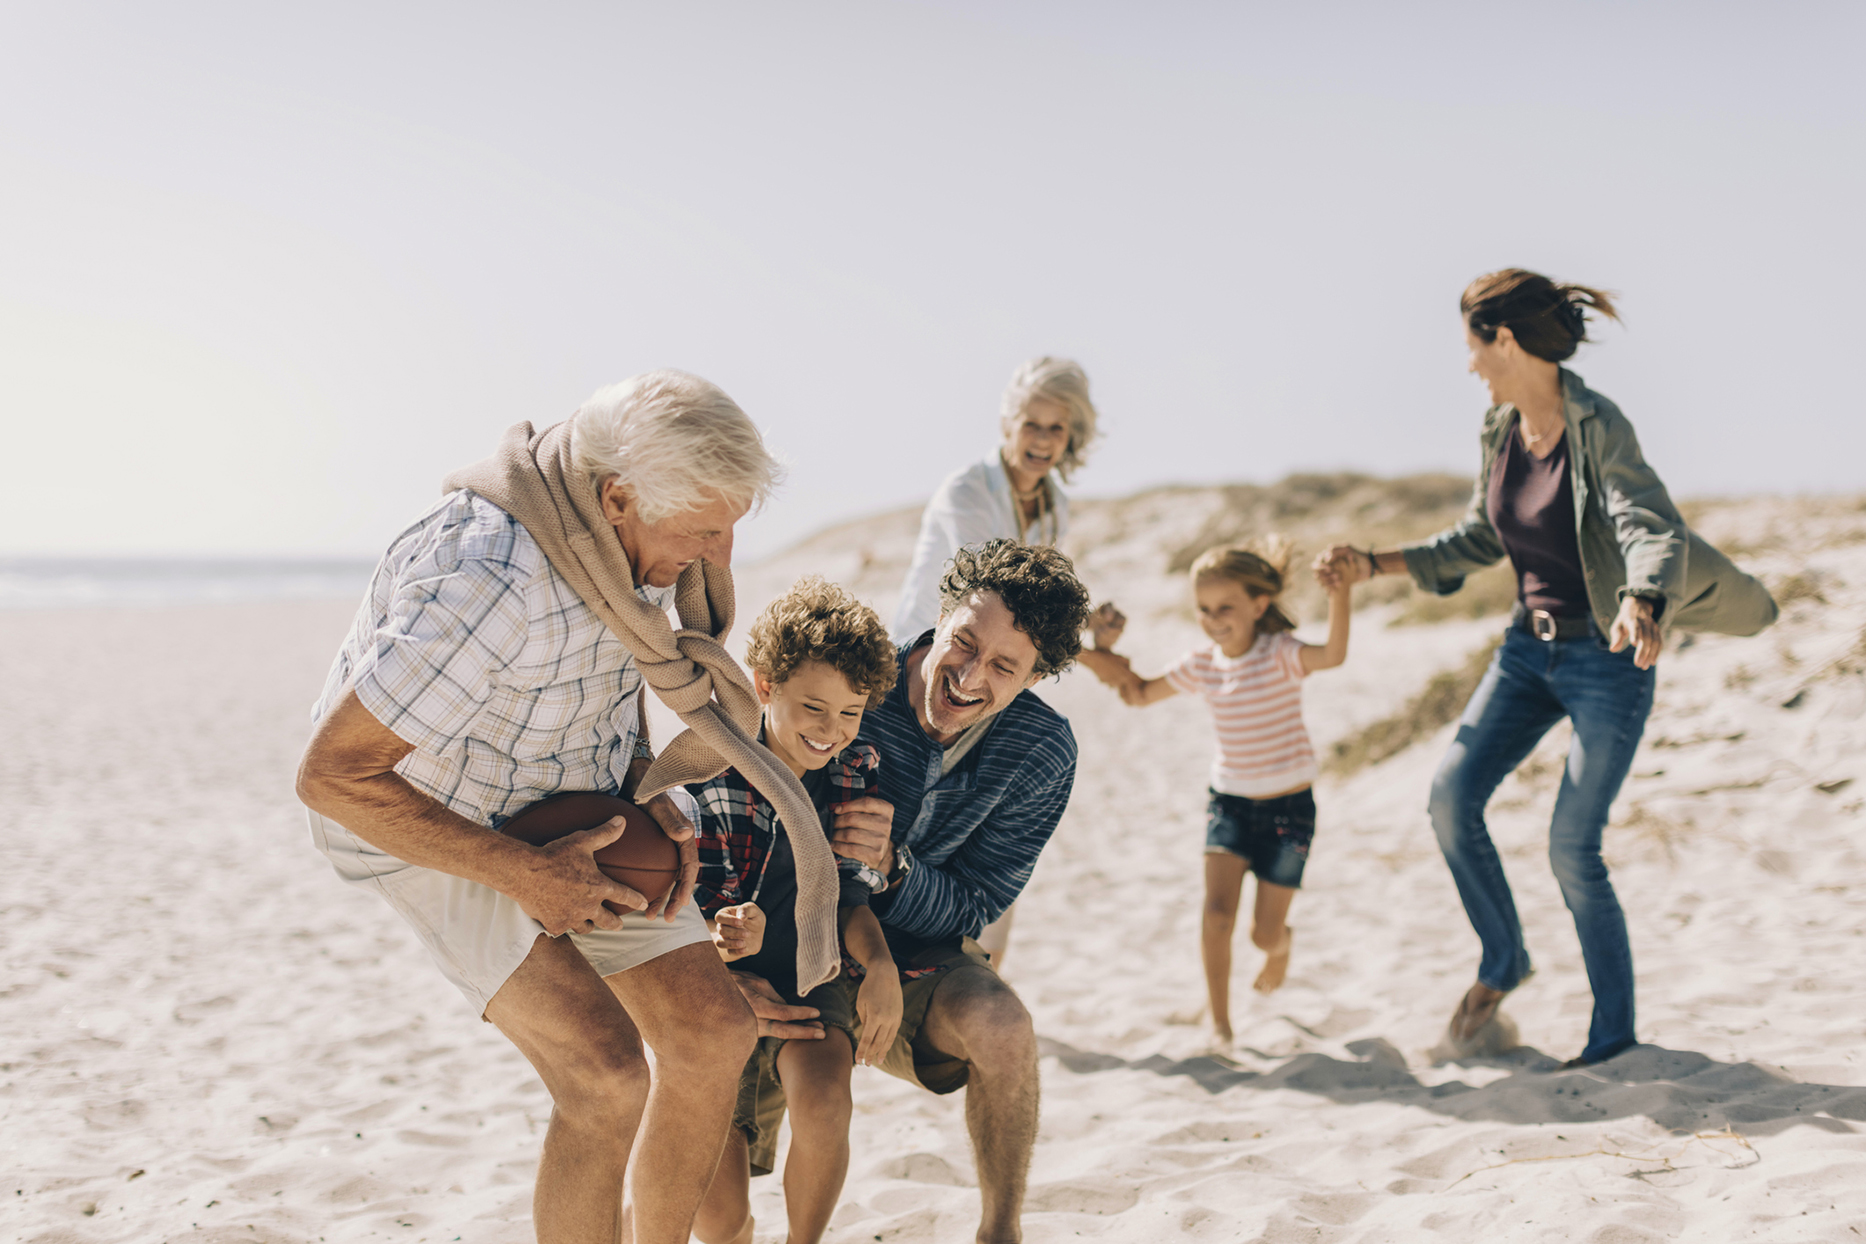 Here's How to Plan the Best Family Vacation, Based on Your Personality